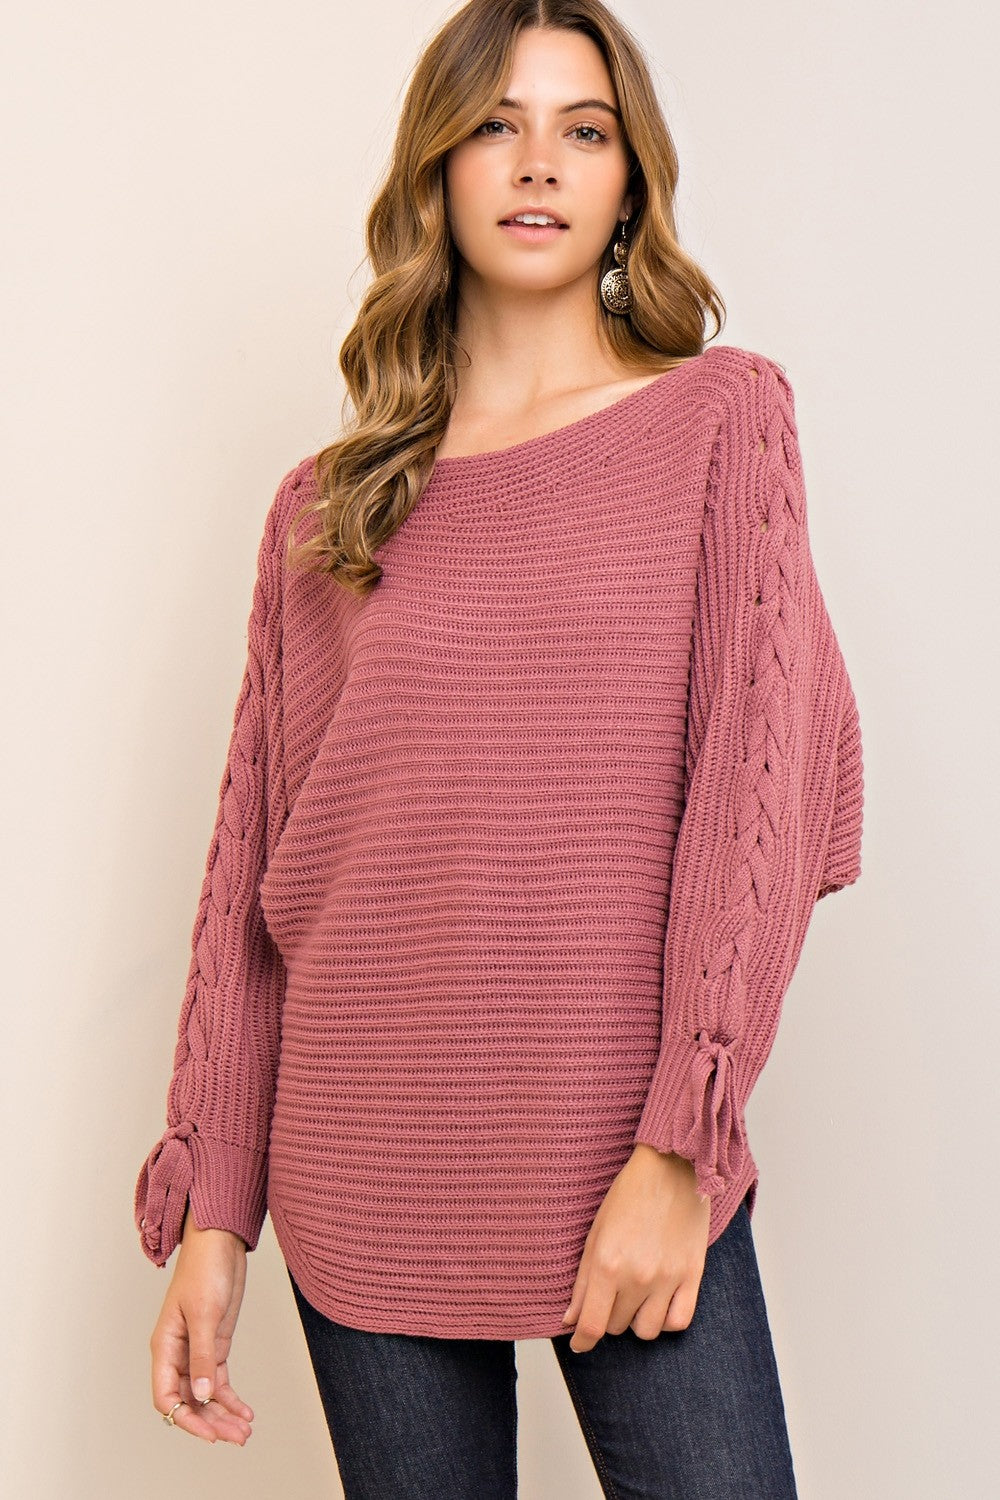 Dusty Pink Lace-Up Sweater